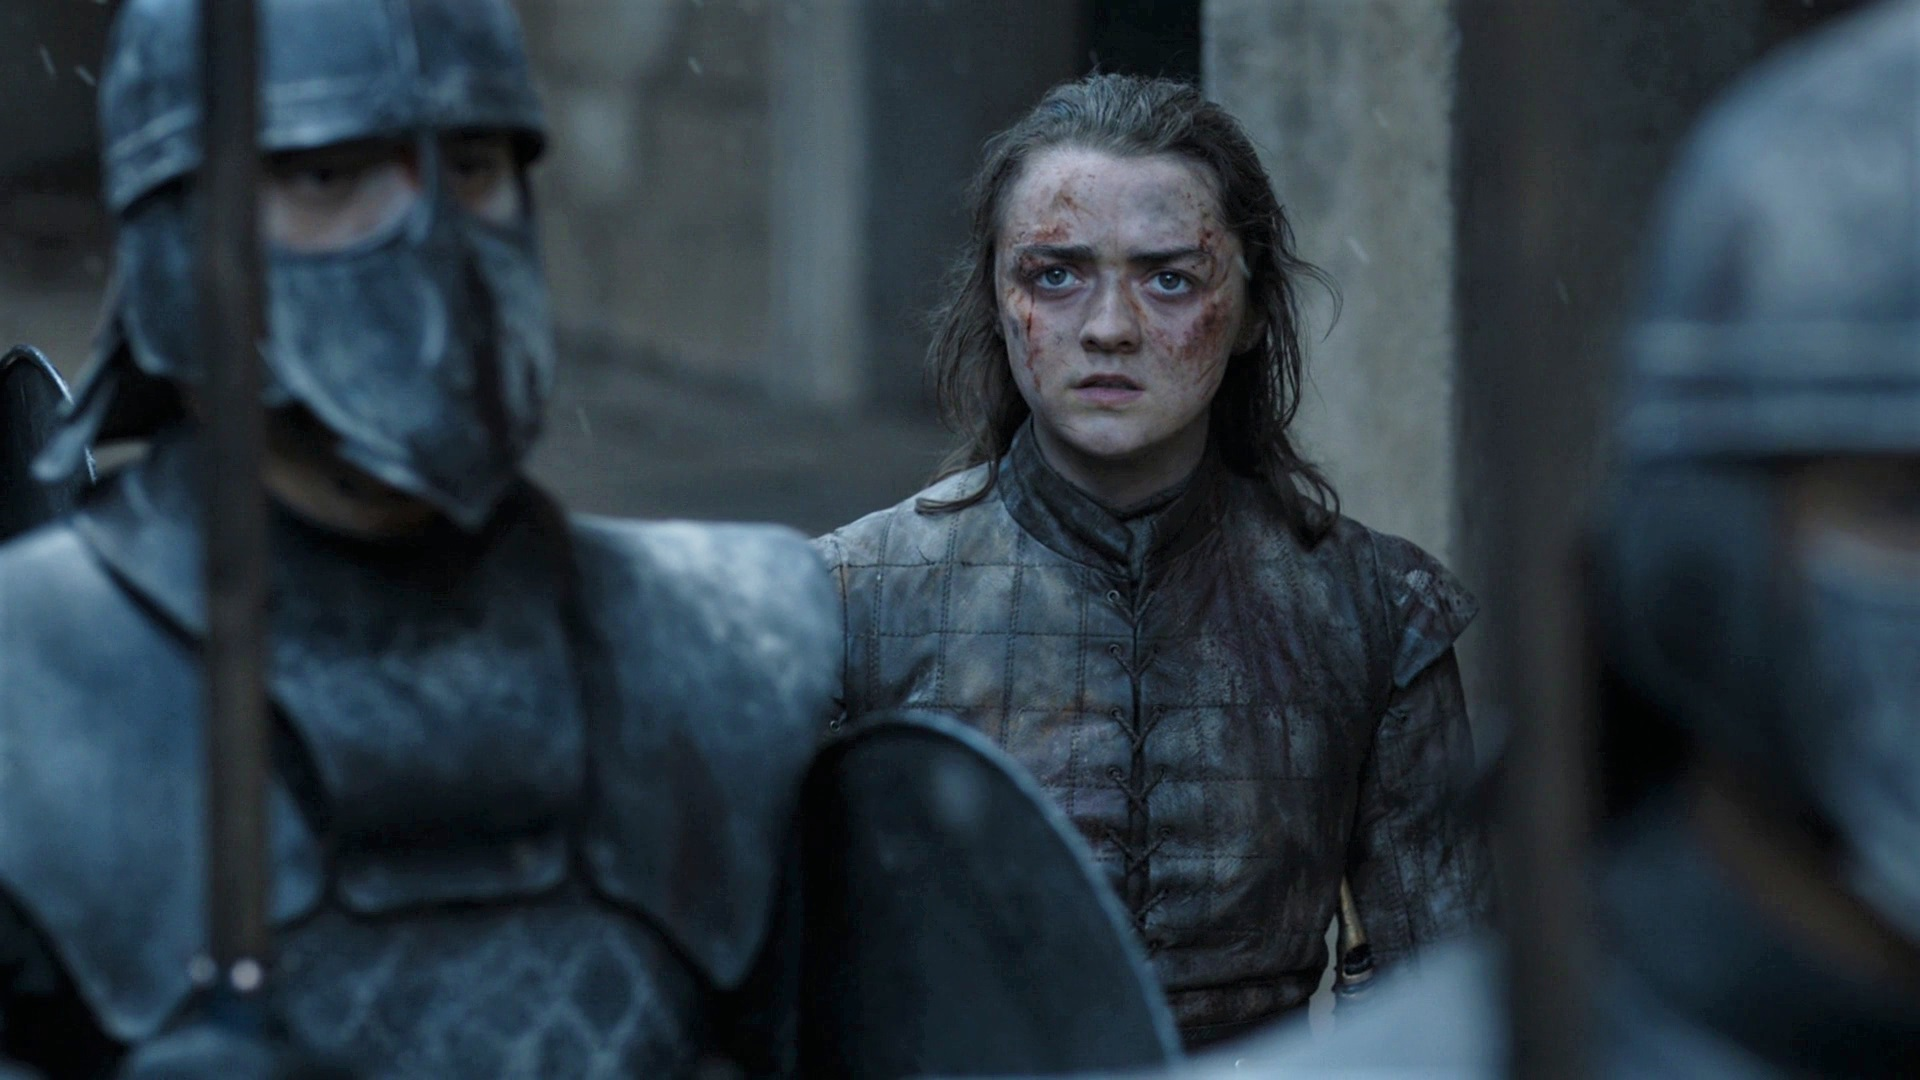 HBO Boss Expected 'Game of Thrones' Season 8 Backlash, Shuts Down Potential Arya Sequel